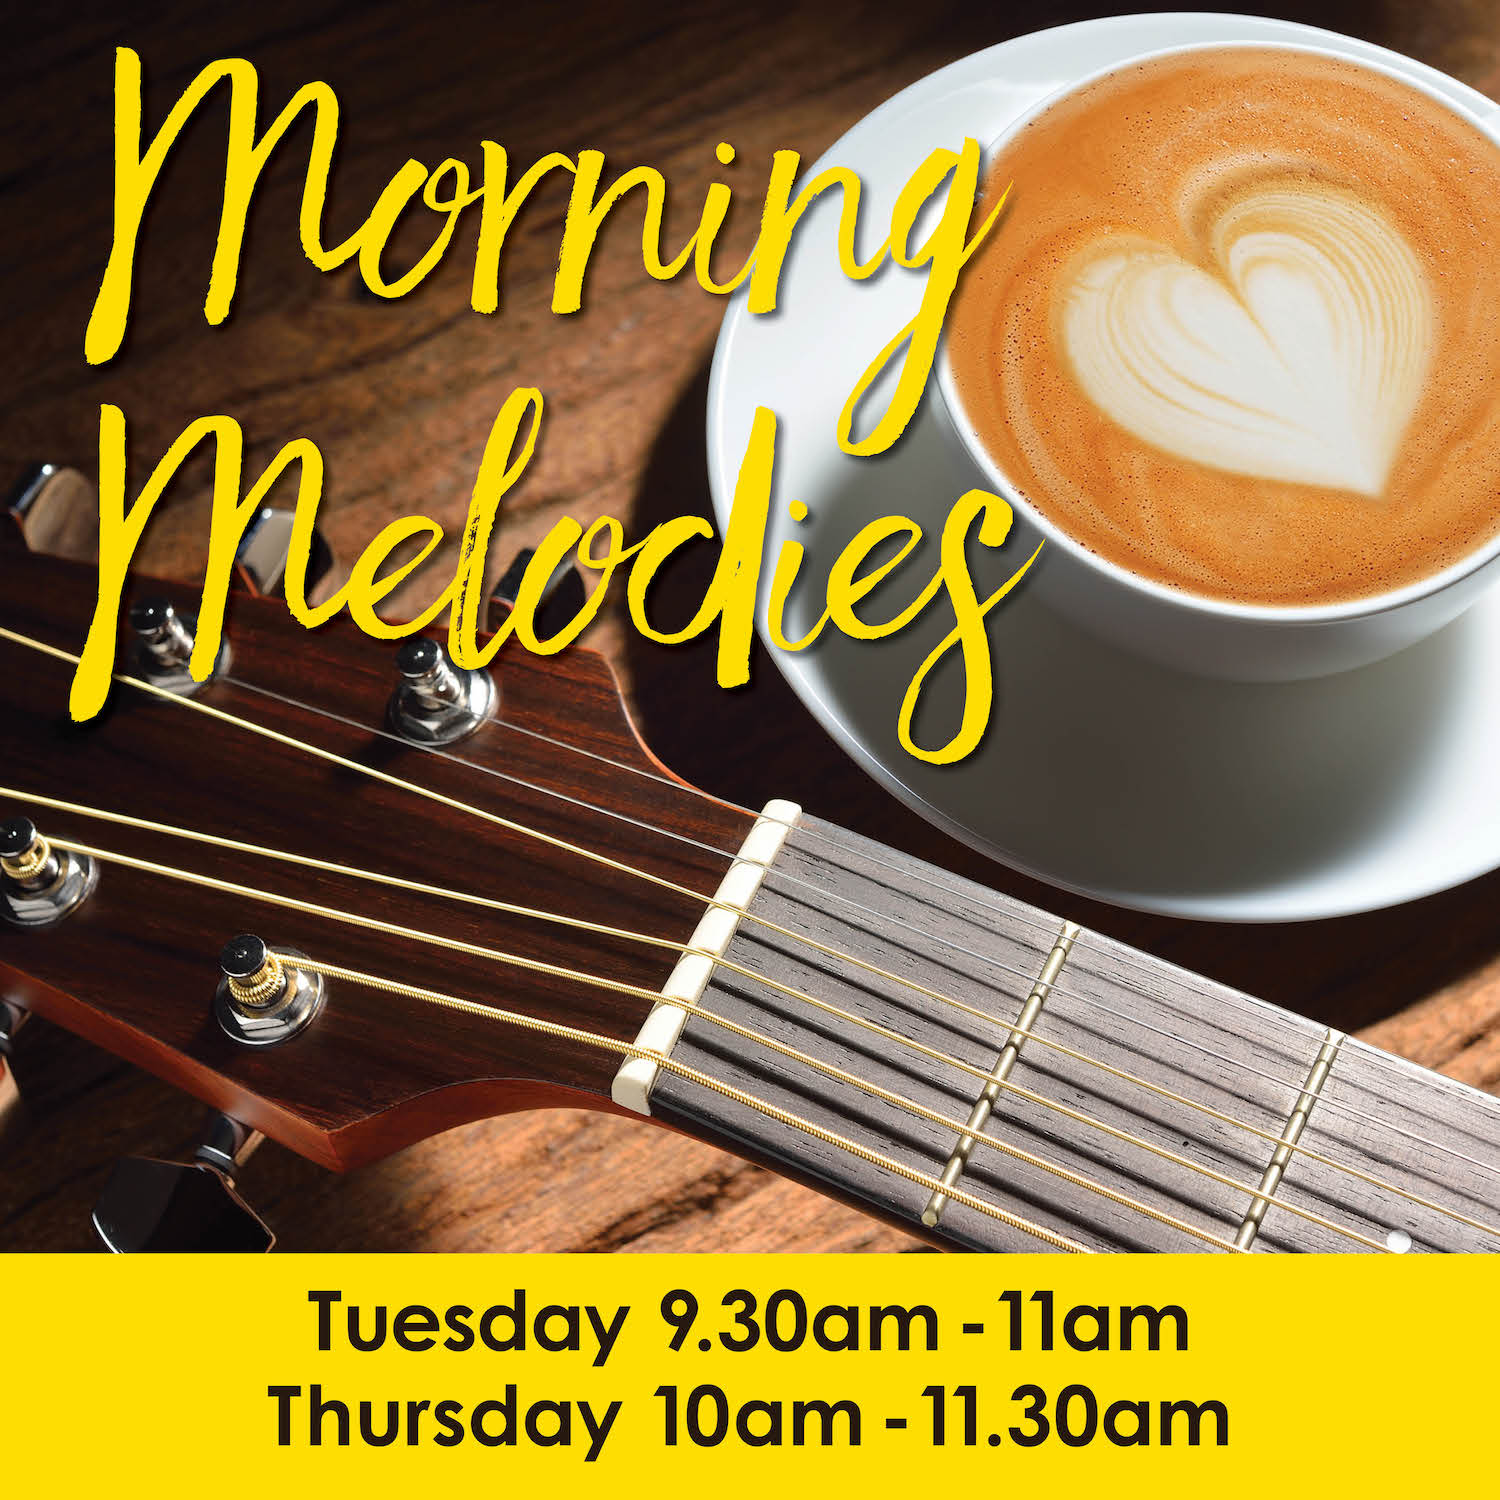 CARDIFF RSL MORNING MELODIES